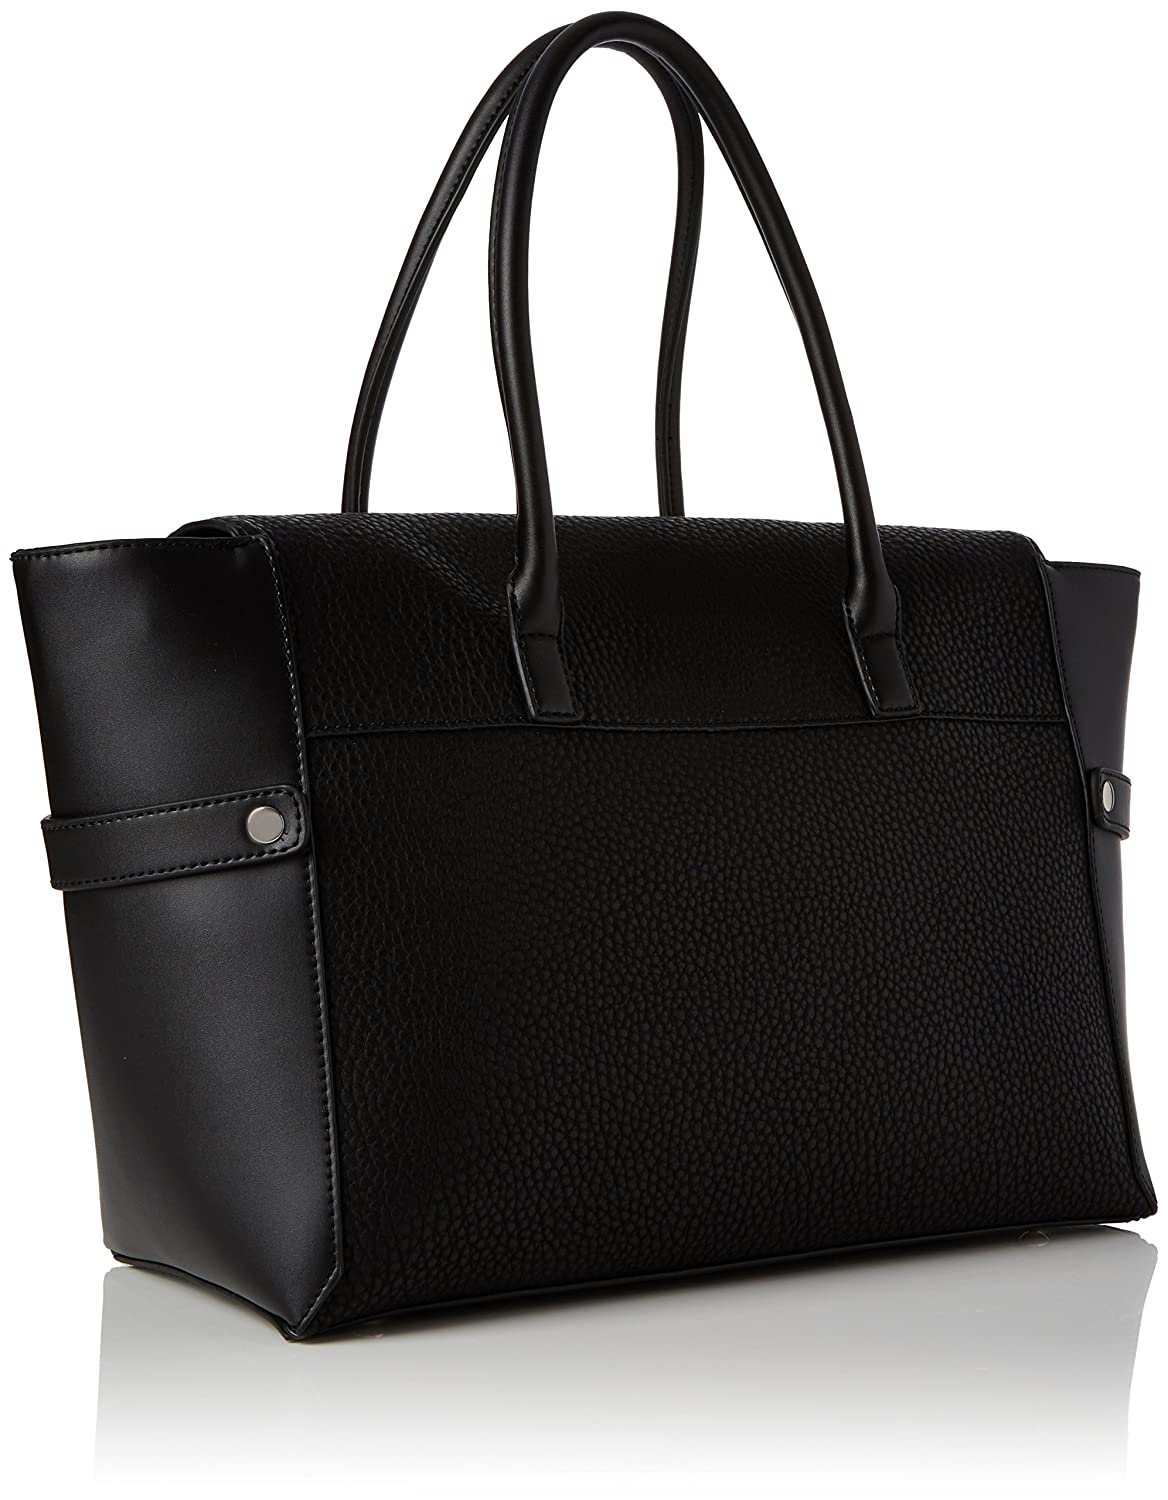 f78db20339fe Fiorelli Women's Barbican FH8714 Tote, Black (Black Casual Mix):  Amazon.co.uk: Shoes & Bags